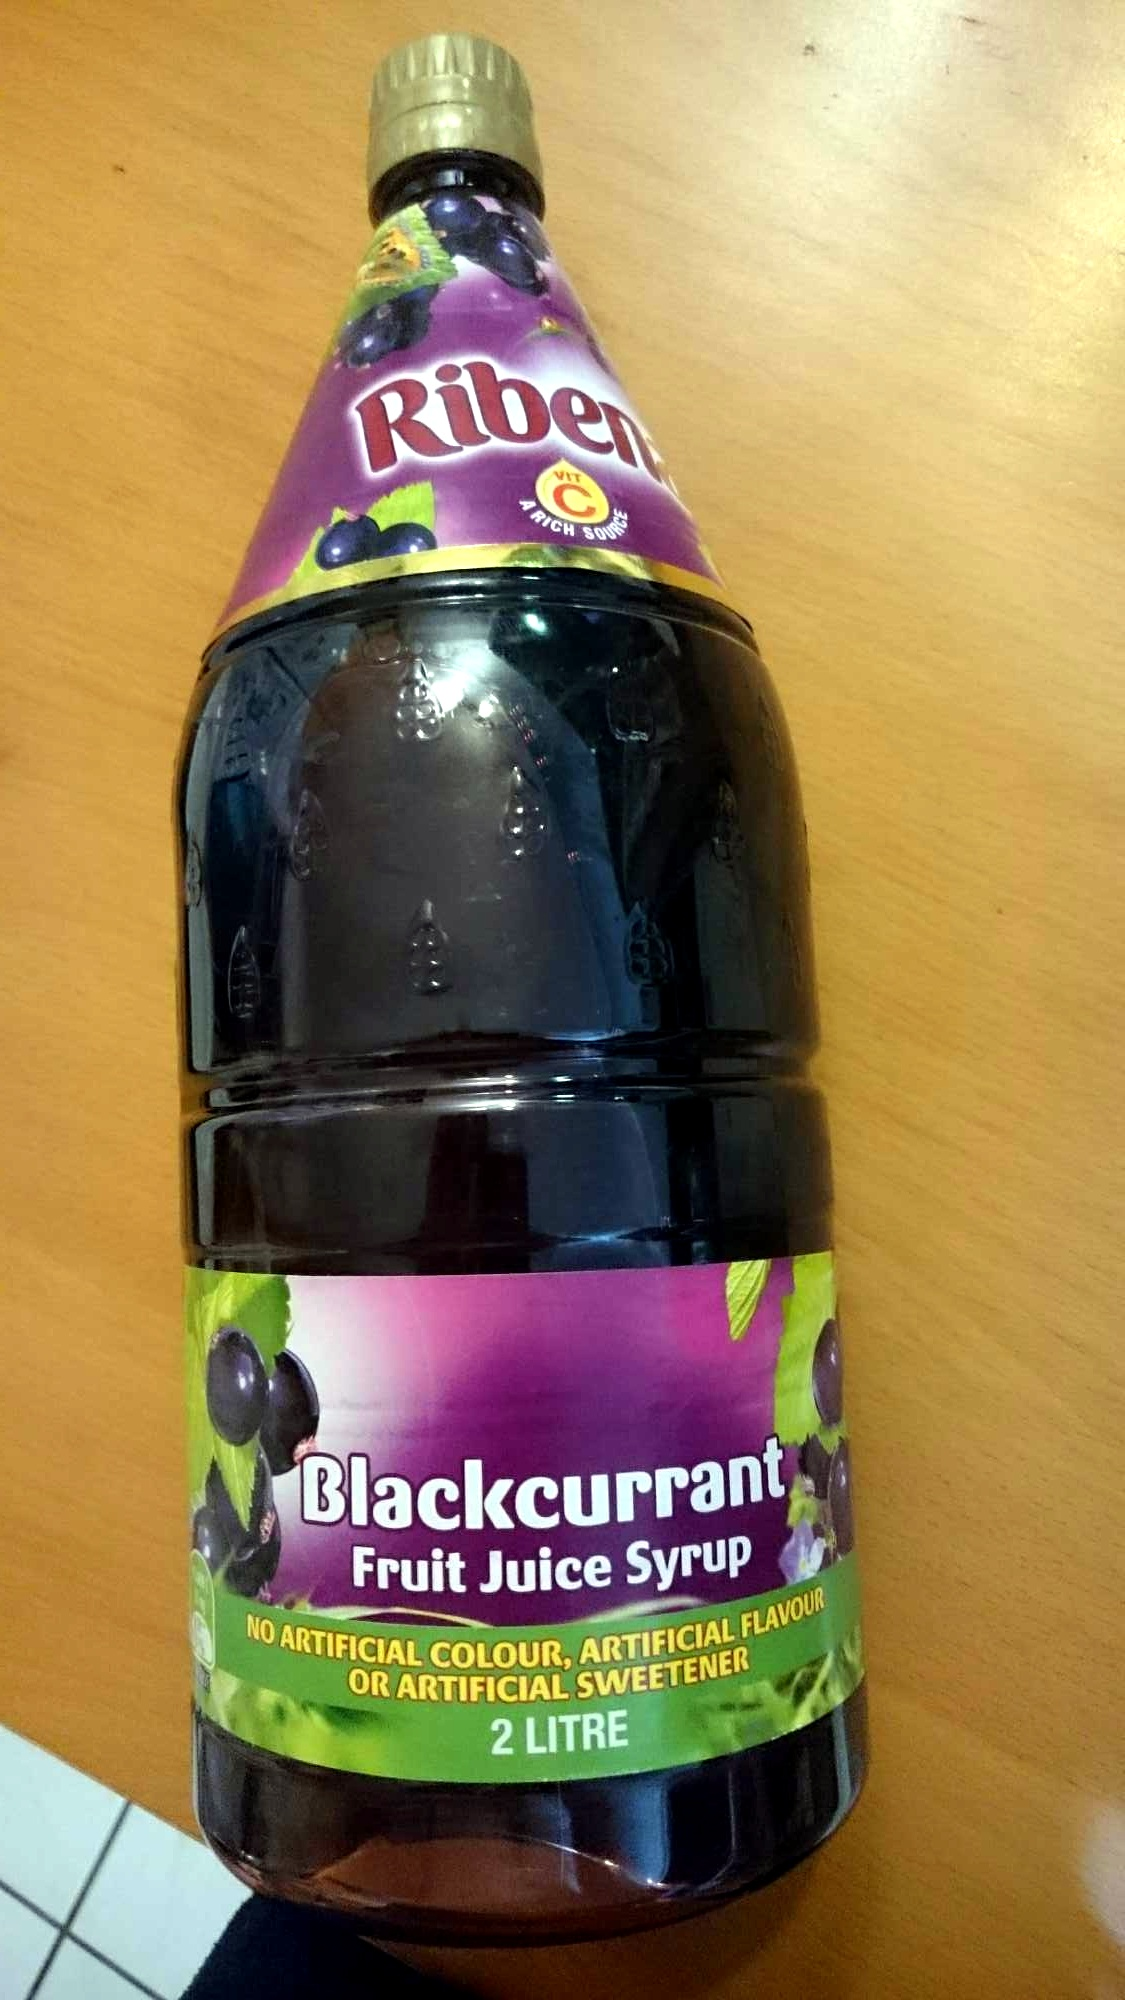 blackcurrant juice syrup - Product - en